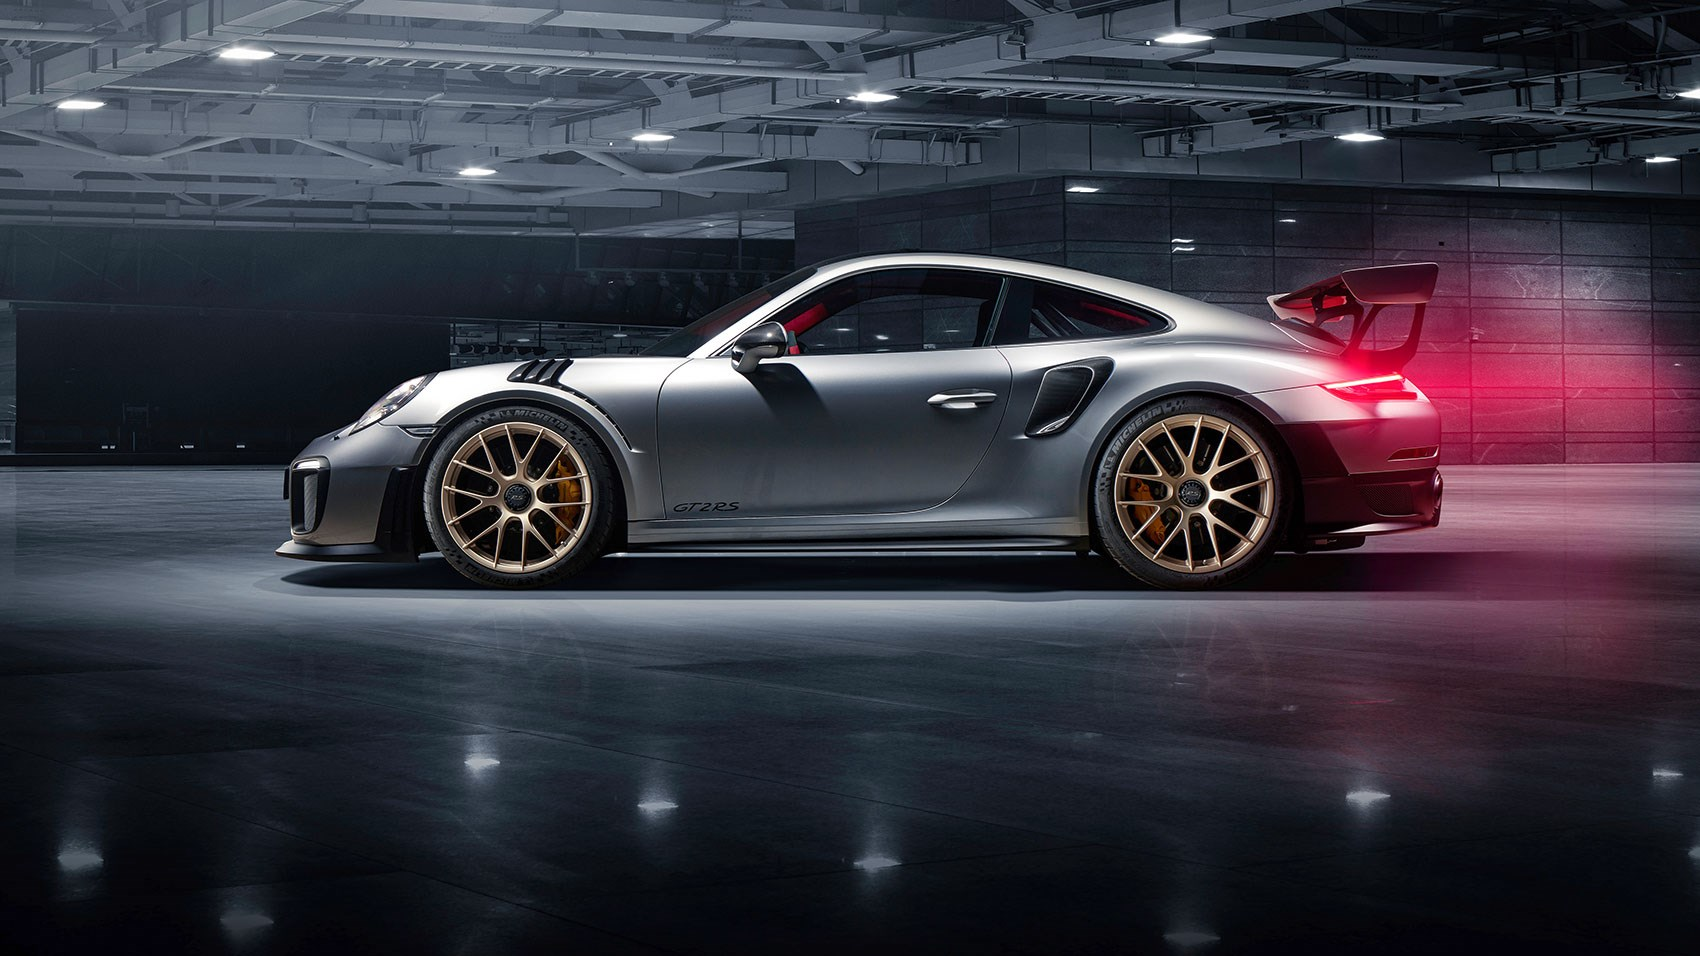 Porsche unveils the all-new 911 GT2 RS in India